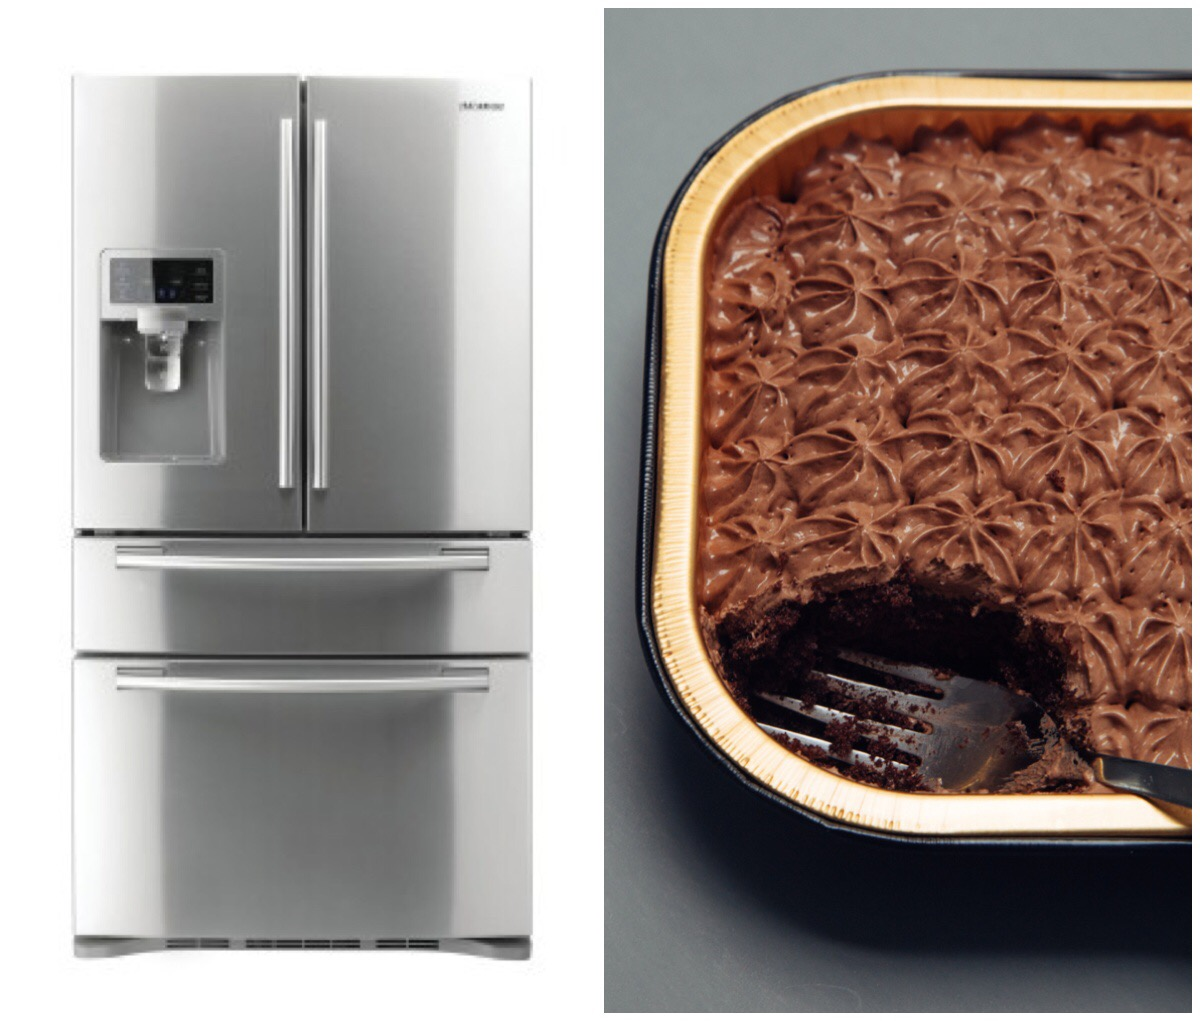 <strong>Snack attacker.</strong> An internet-connected refrigerator may send data about usage back to the manufacturer. But will they use that info to improve their product--or sell it to your health insurance company to report on your chocolate cake habit?.